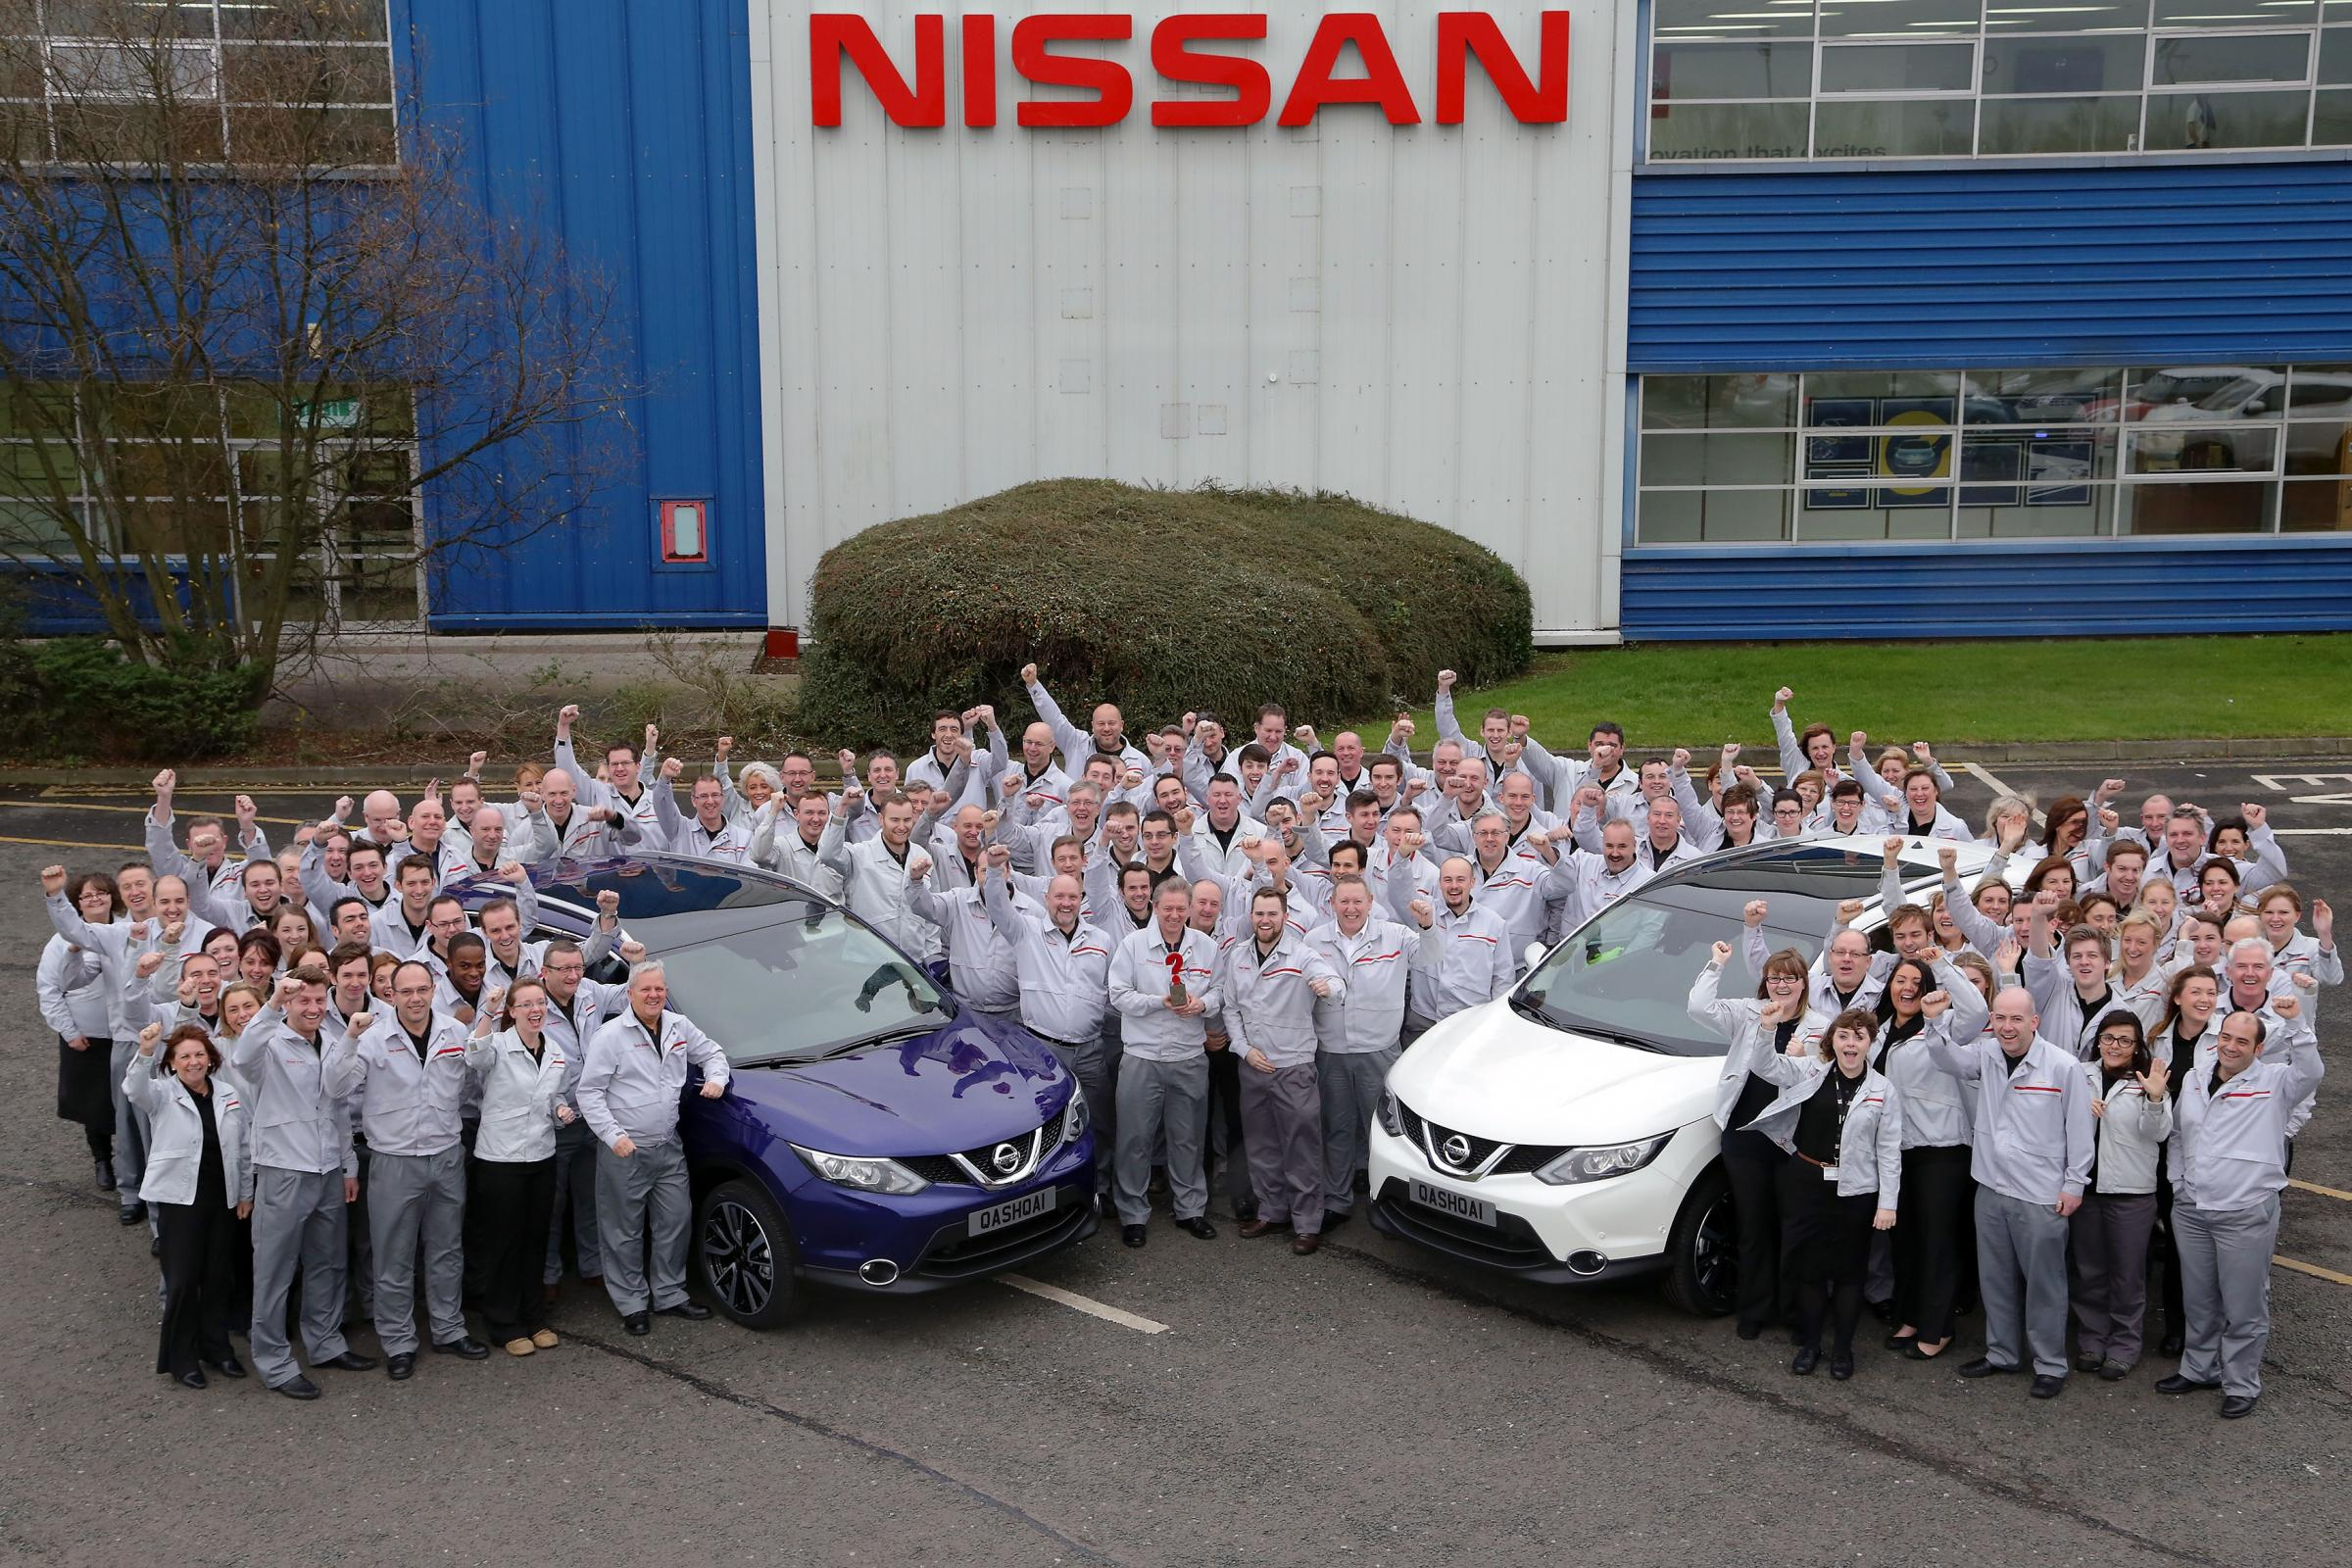 Staff at Nissan Sunderland, the largest car factory in the UK, celebrate production milestones and a car of the year award